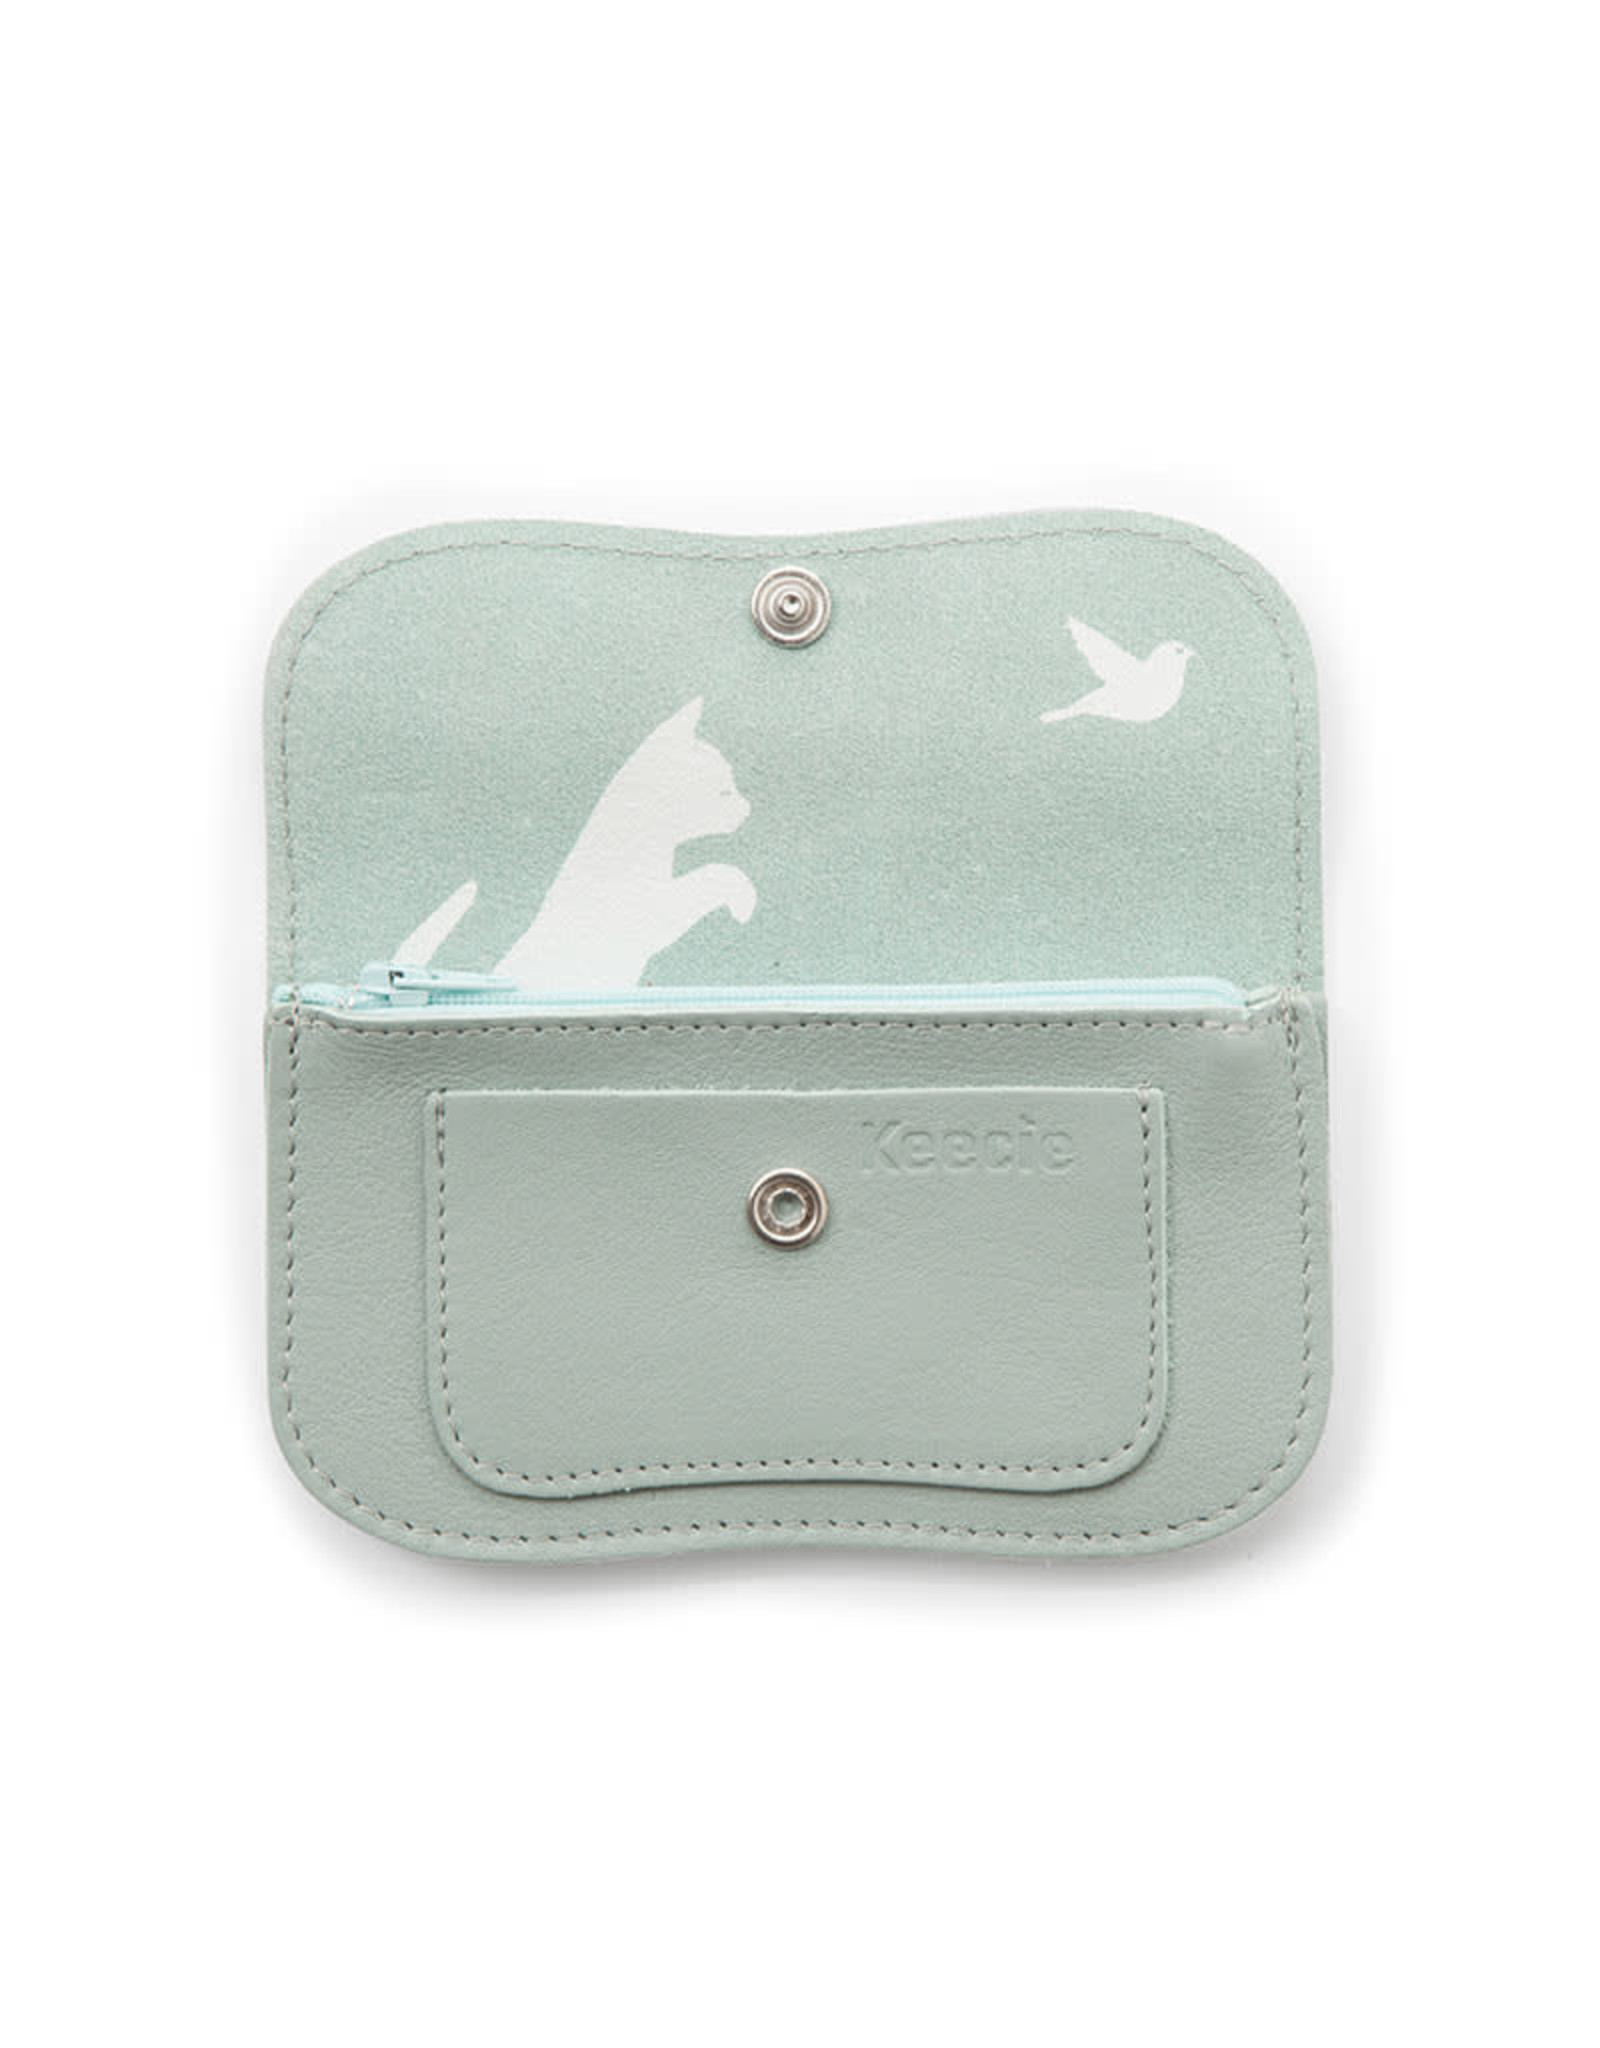 Keecie Cat chase small wallet dusty green